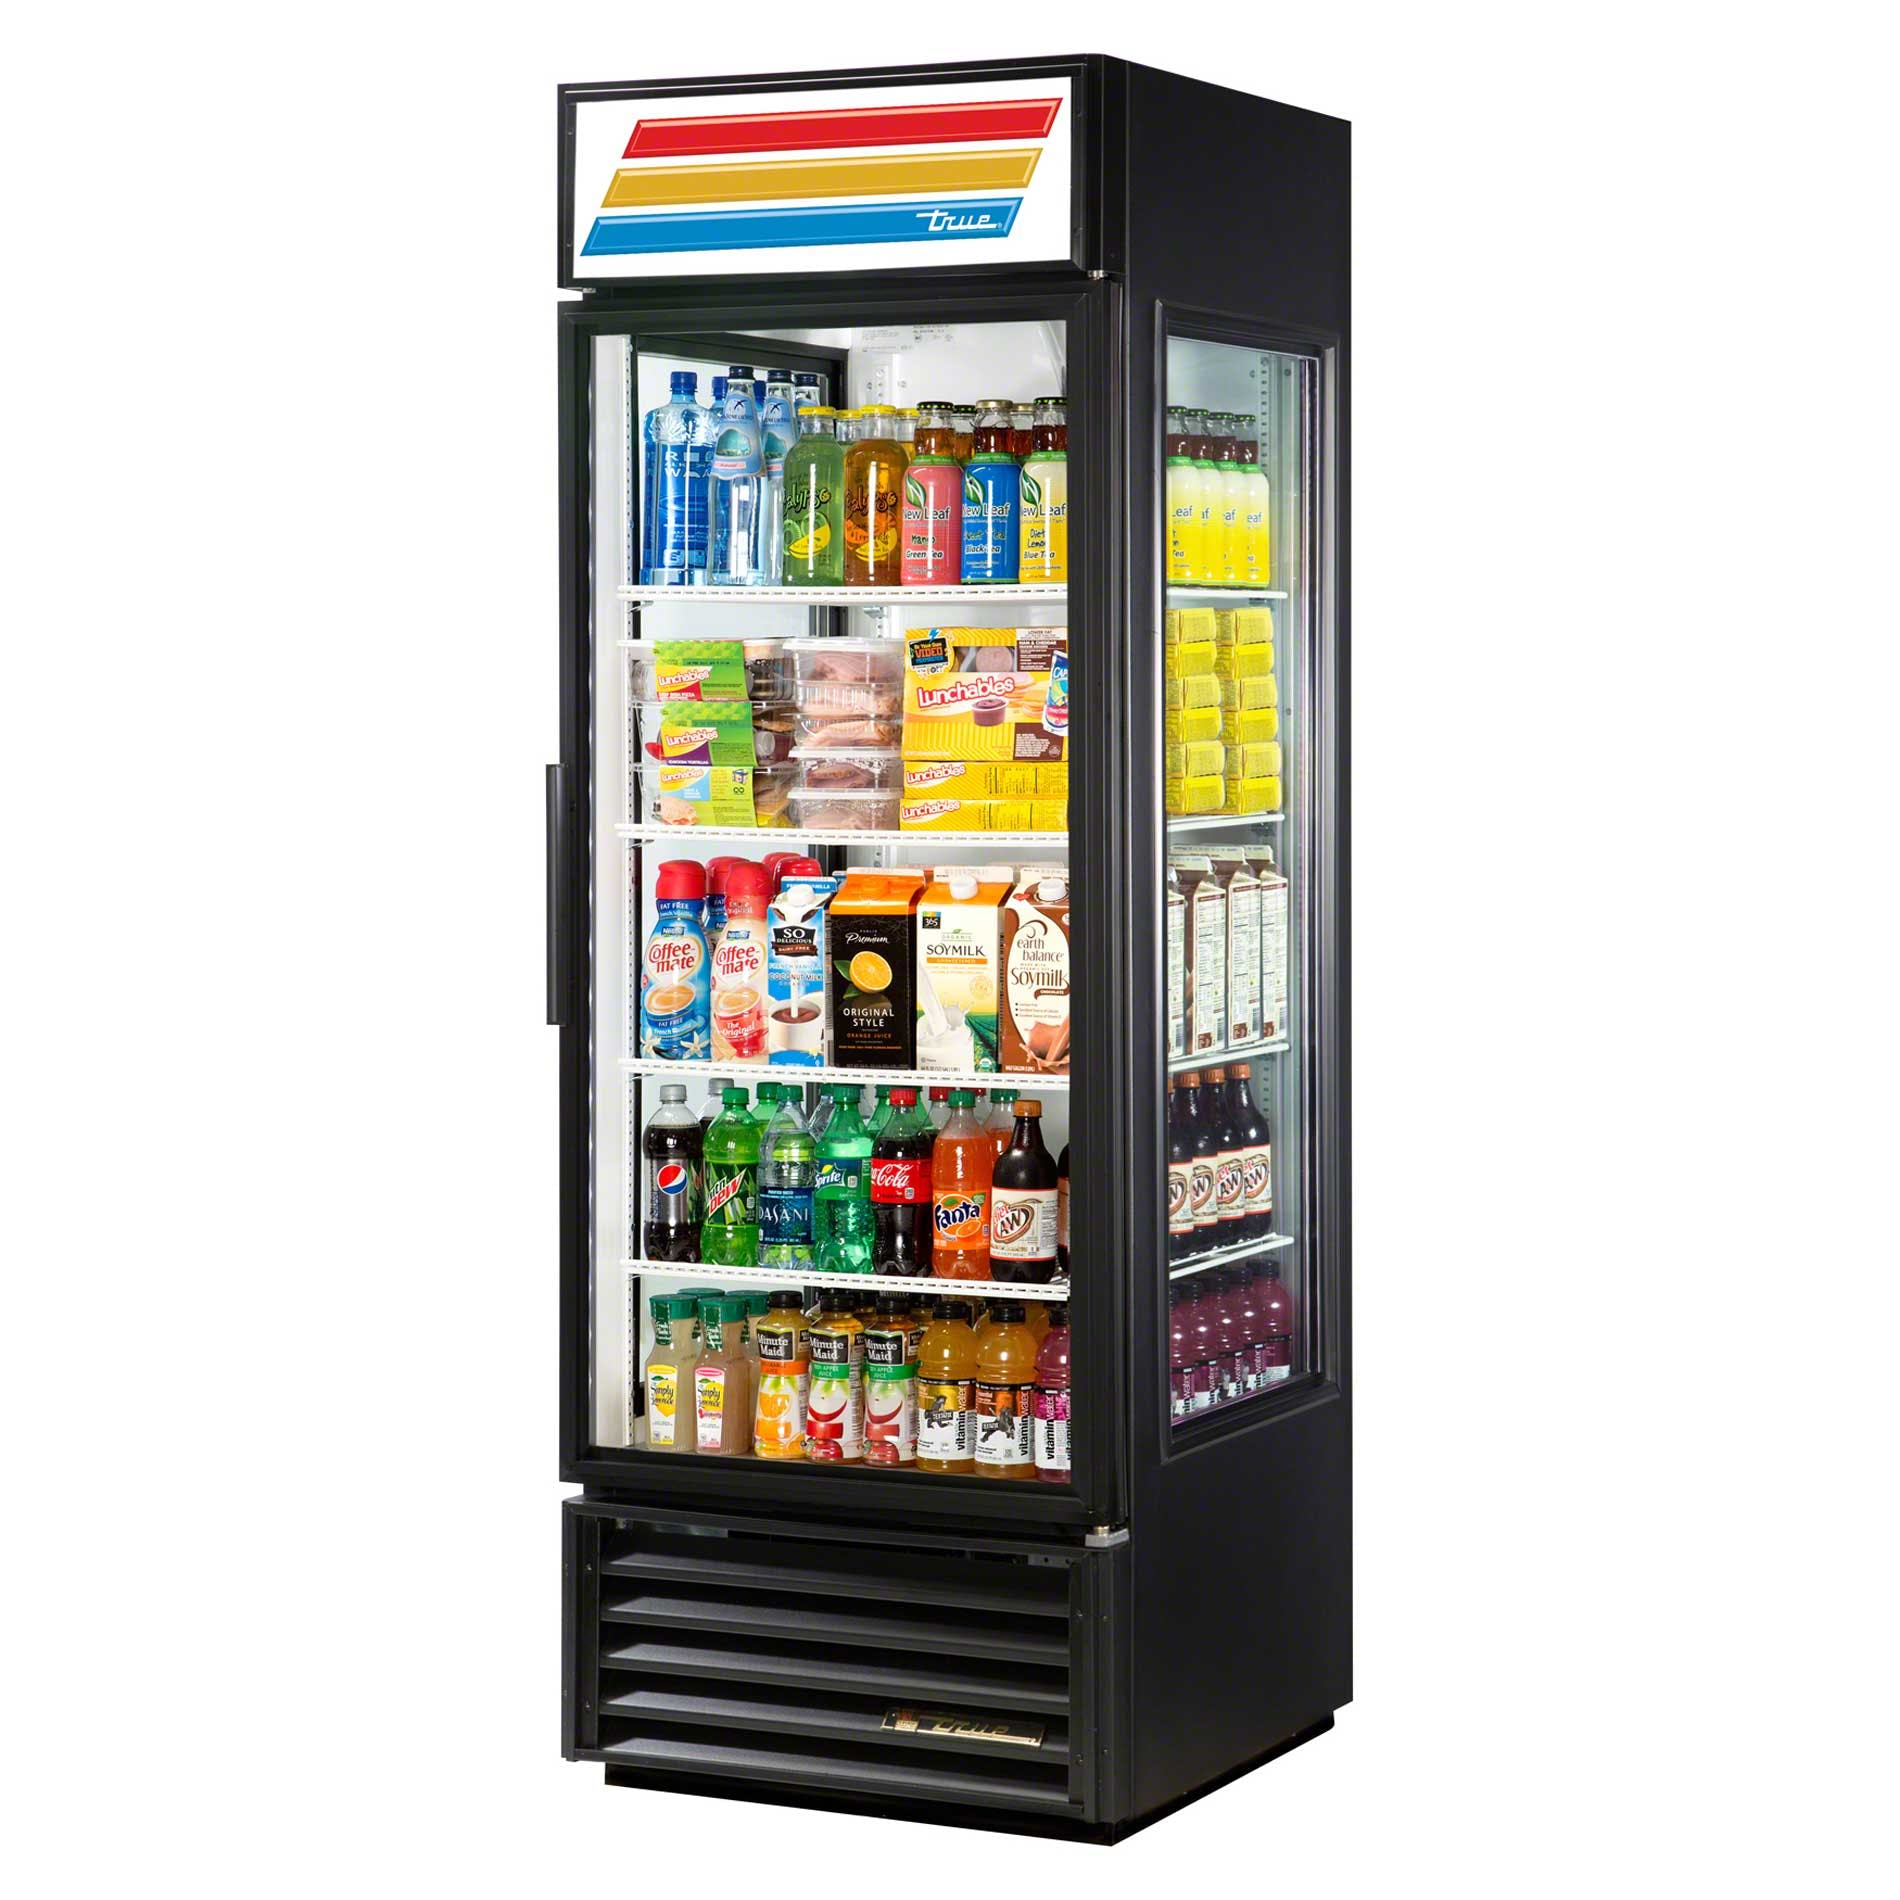 "True - GEM-23-LD 27"" Glass End Merchandiser Refrigerator LED Commercial refrigerator sold by Food Service Warehouse"